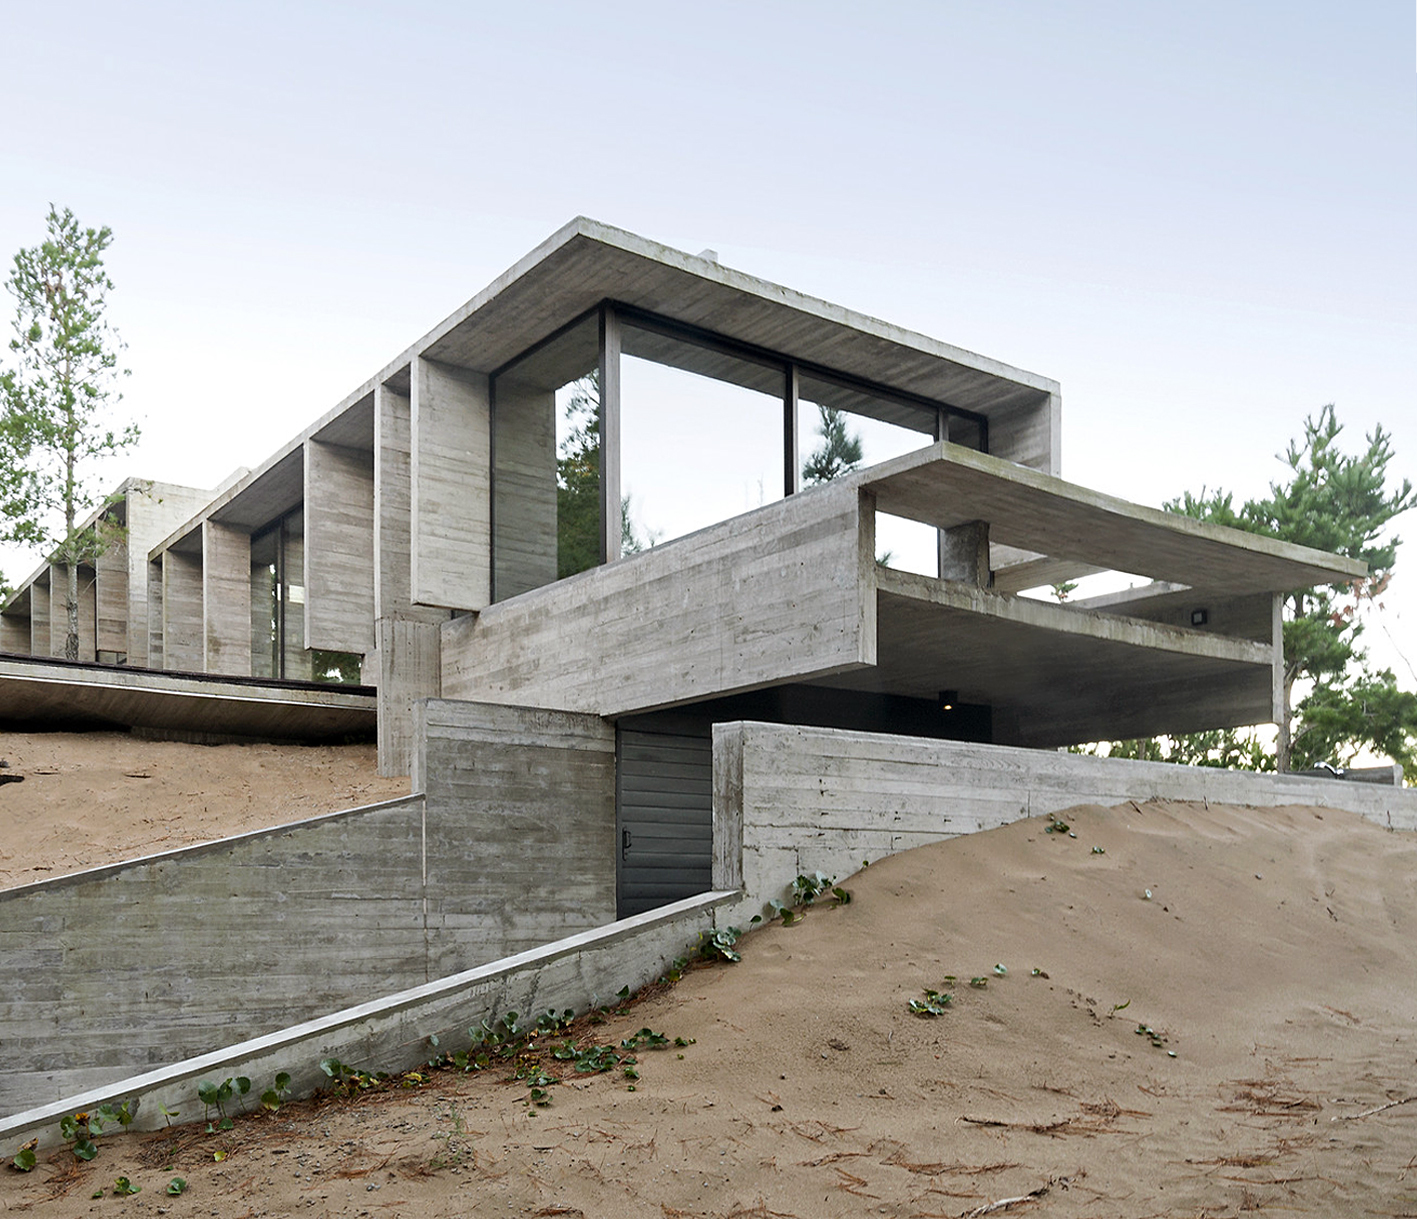 Exposed Concrete Houses in Argentina: 50 Projects and Their Floor Plans